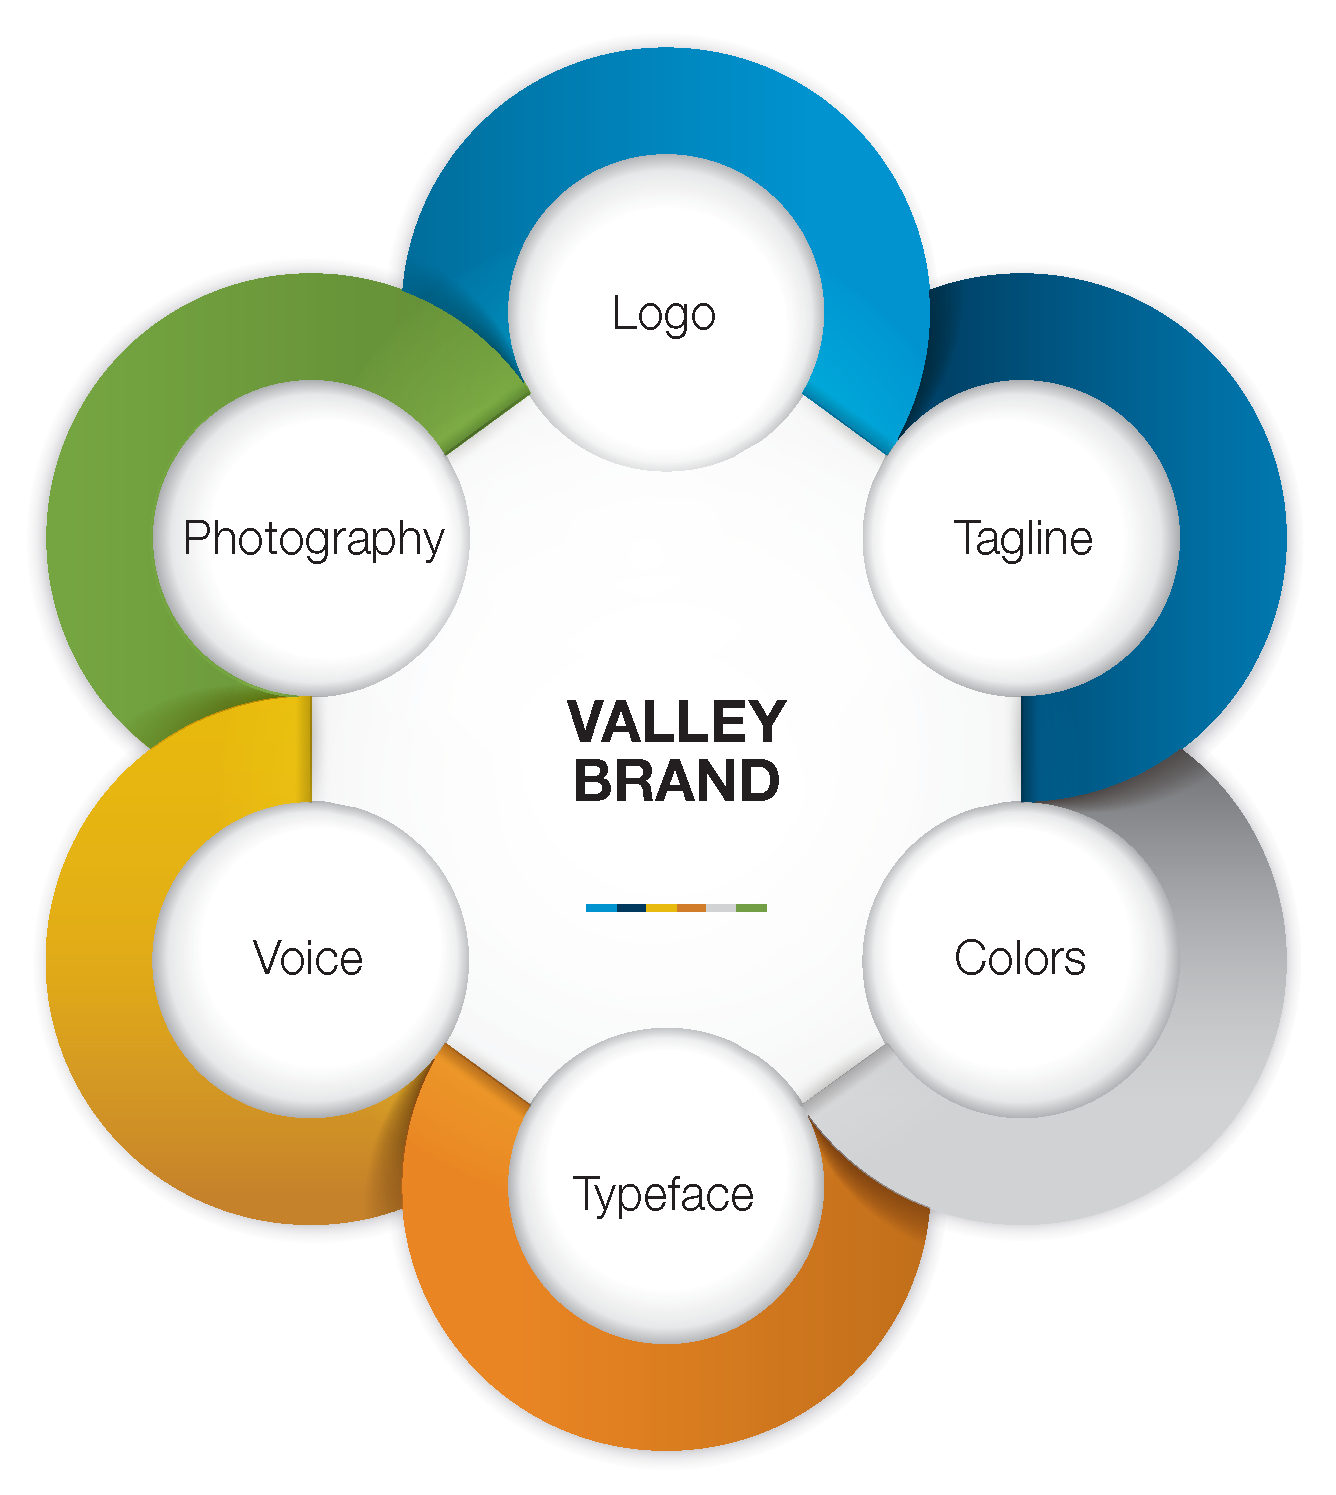 valley brand image